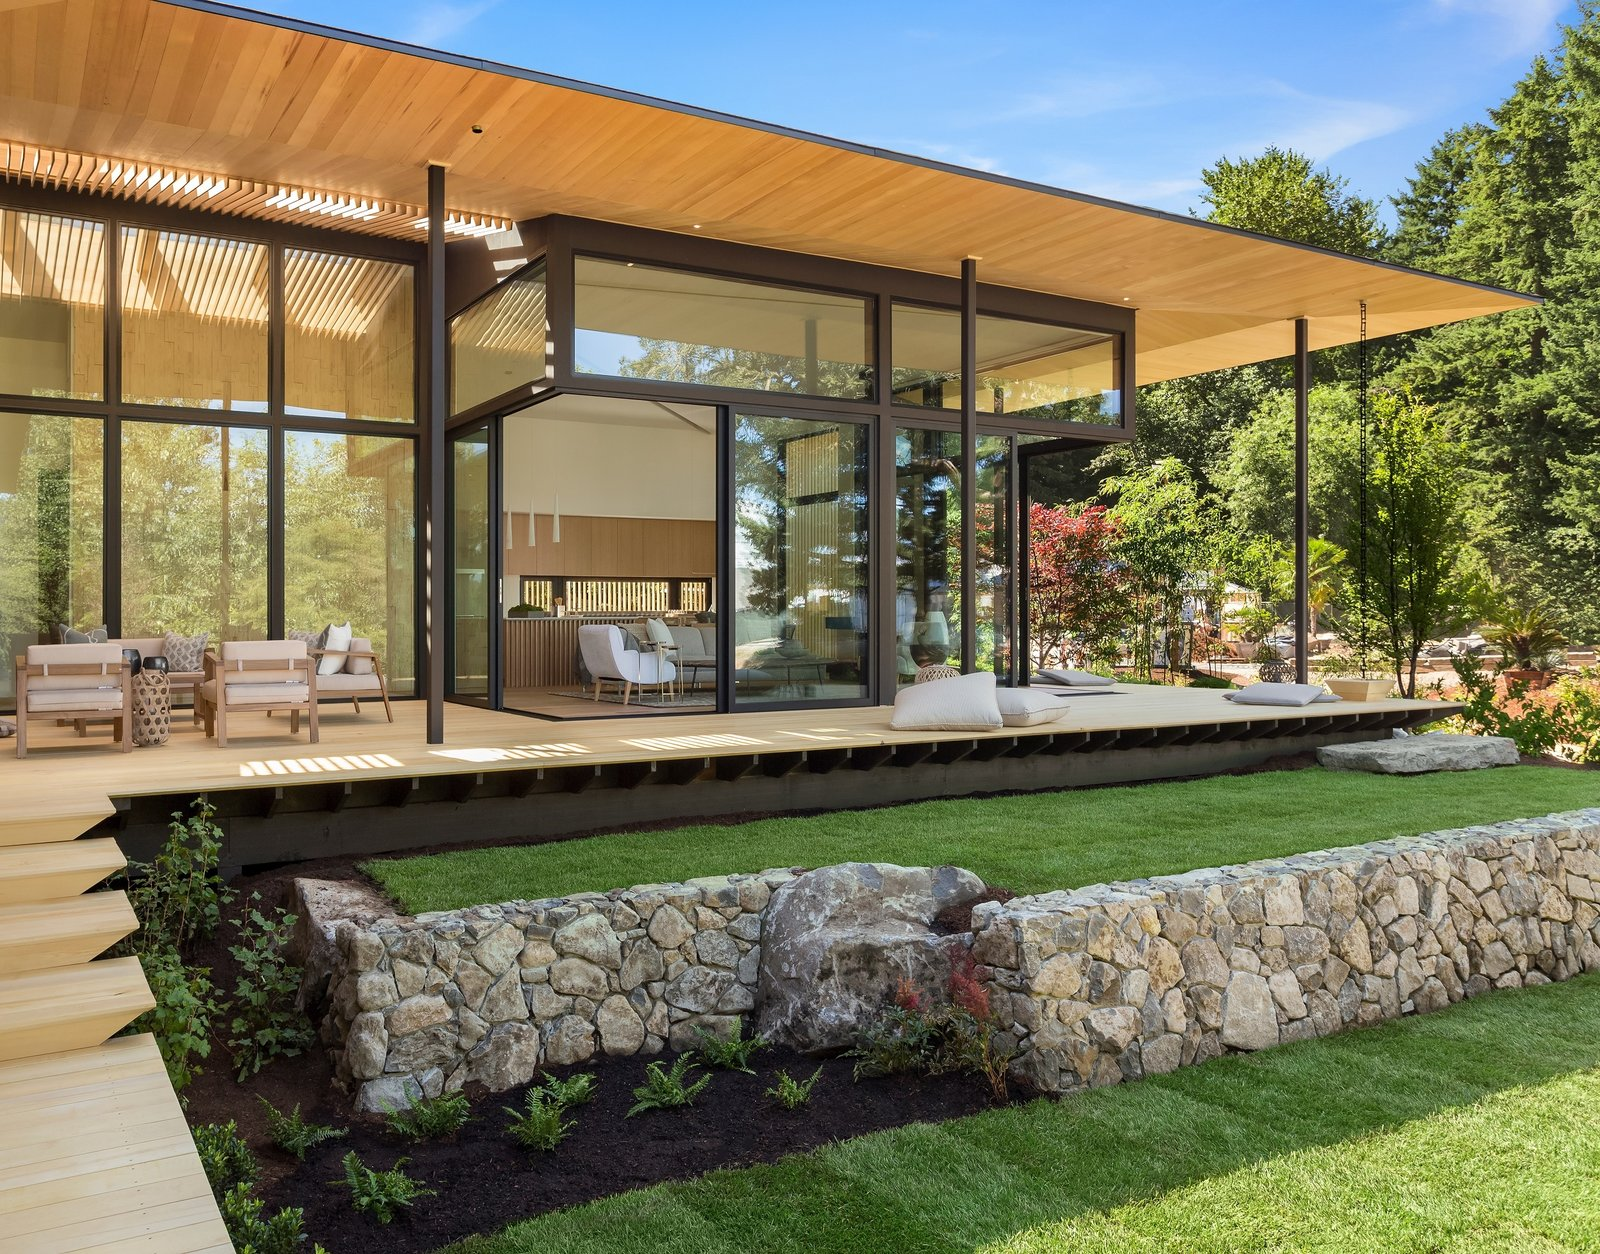 Kengo Kuma Weaves Japanese Design Into This Indoor/Outdoor Oregon Abode